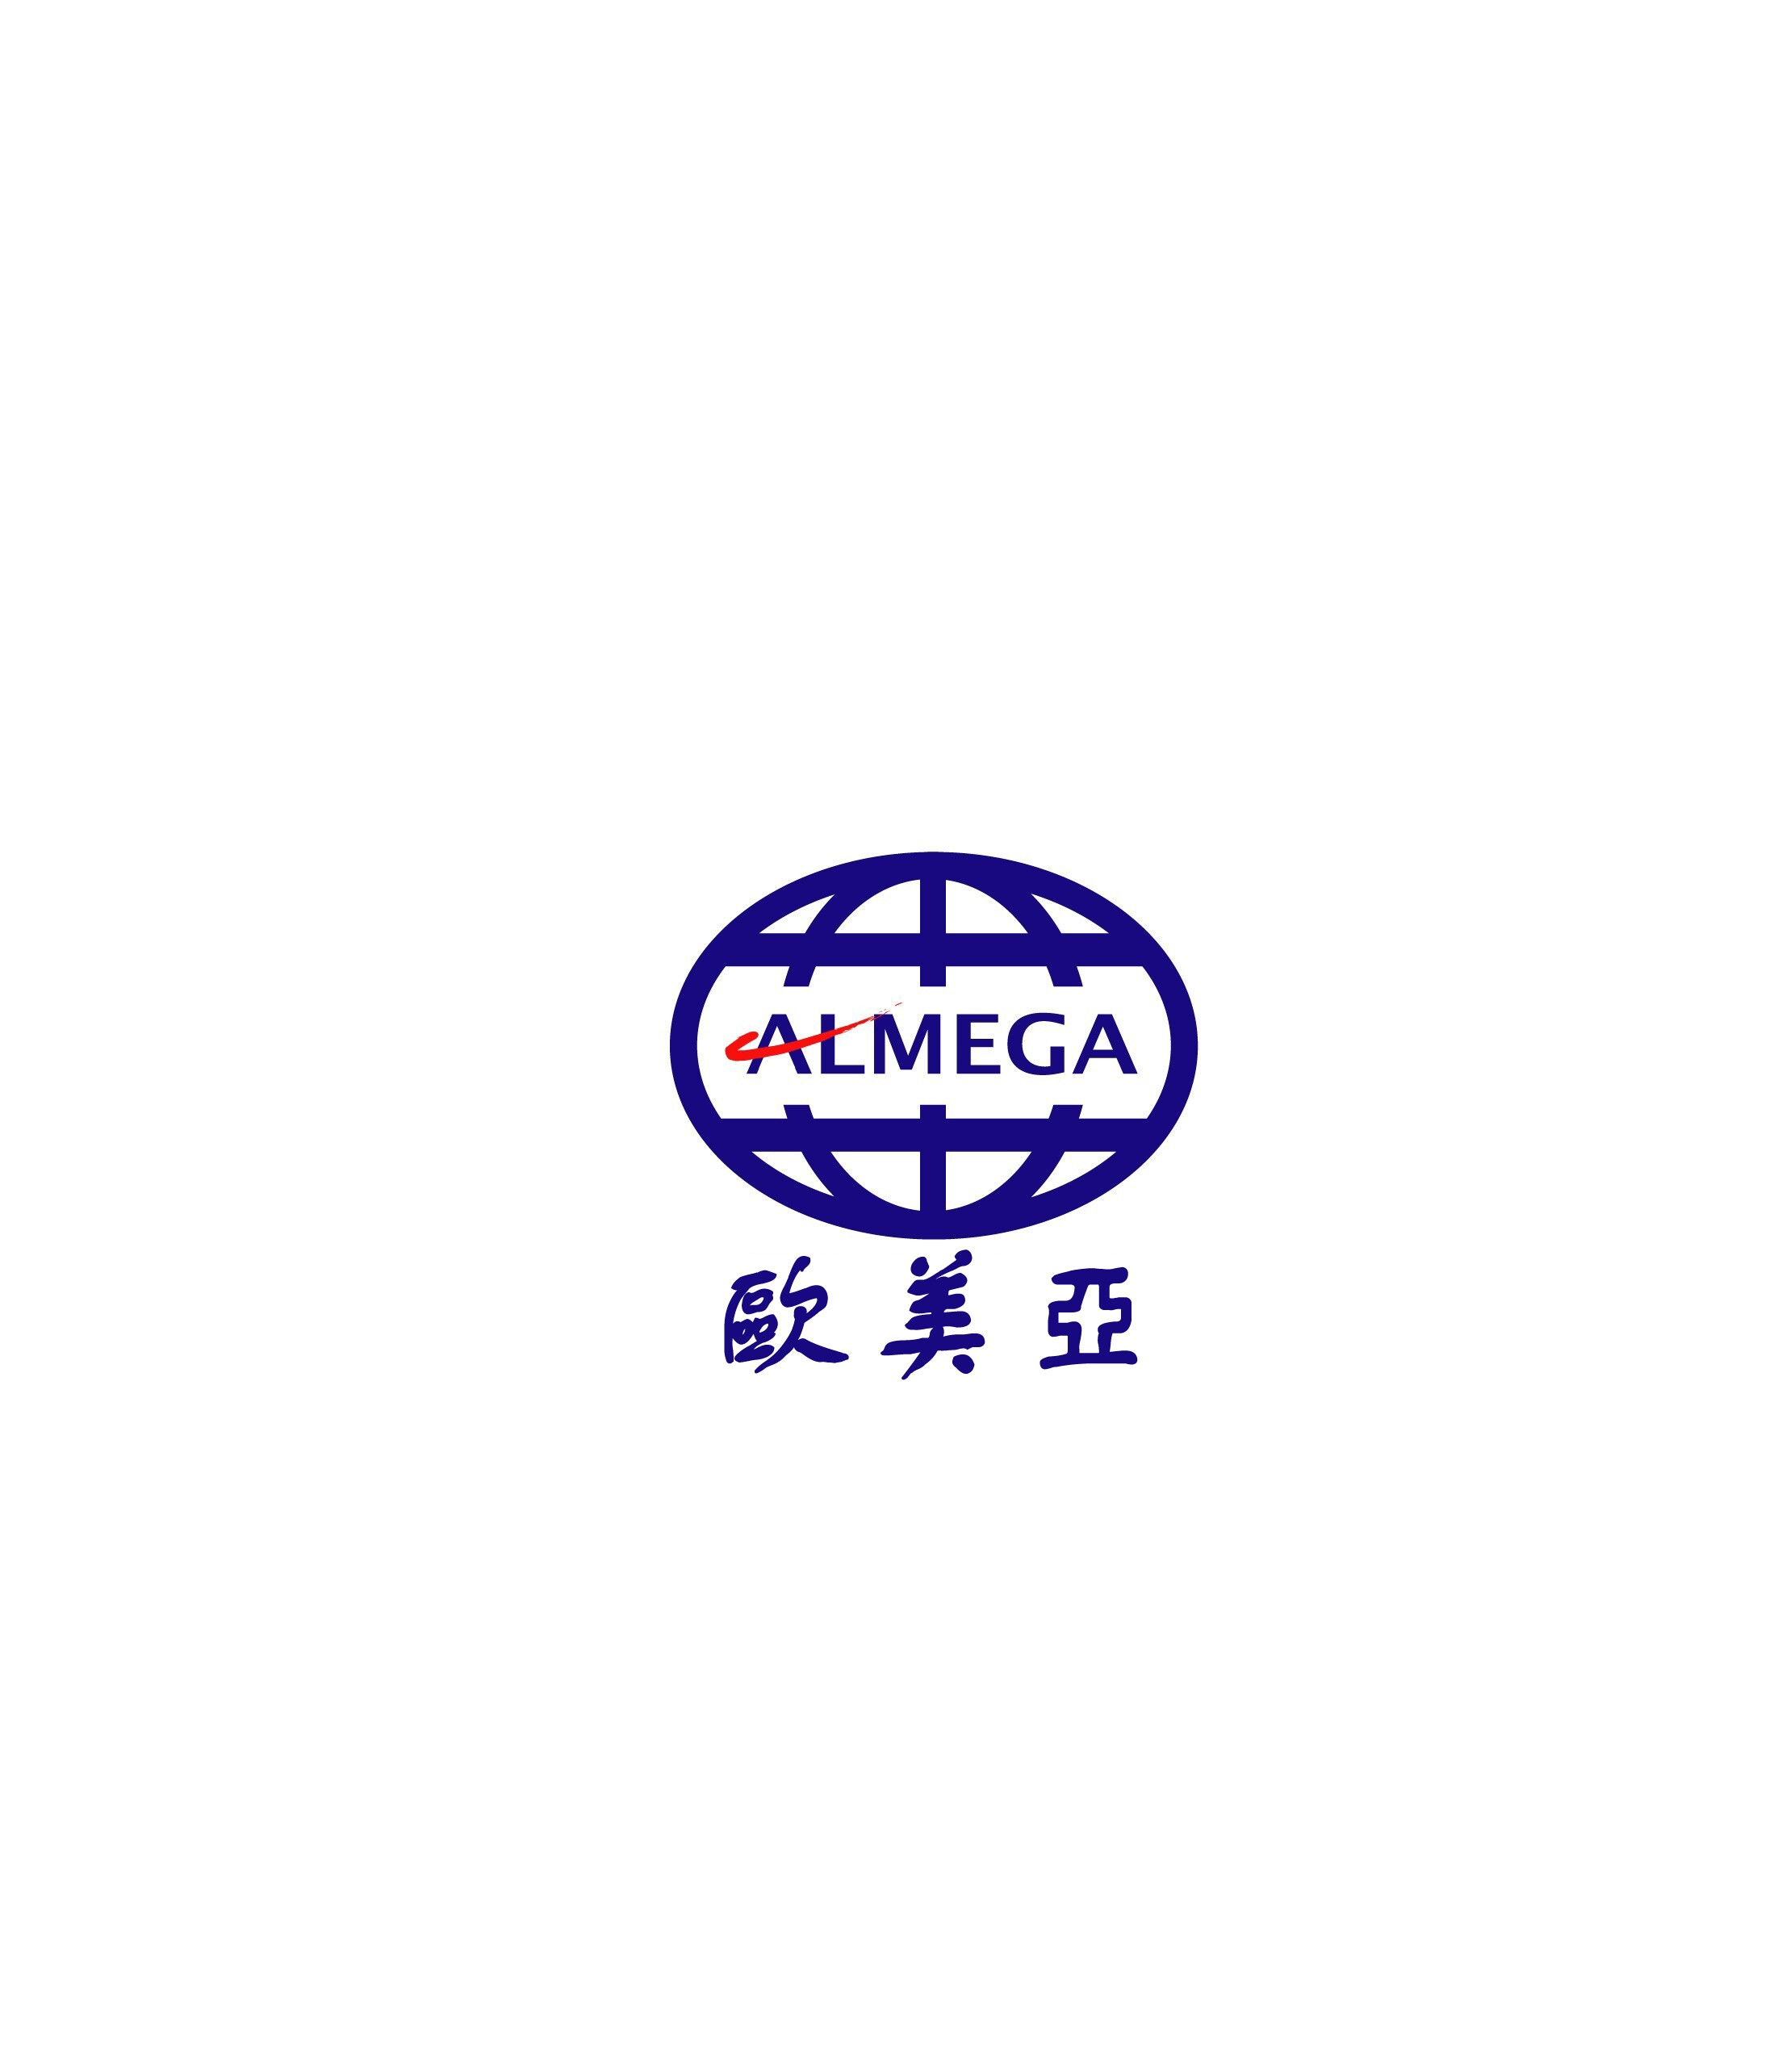 Almega Corporate Consultant Limited logo